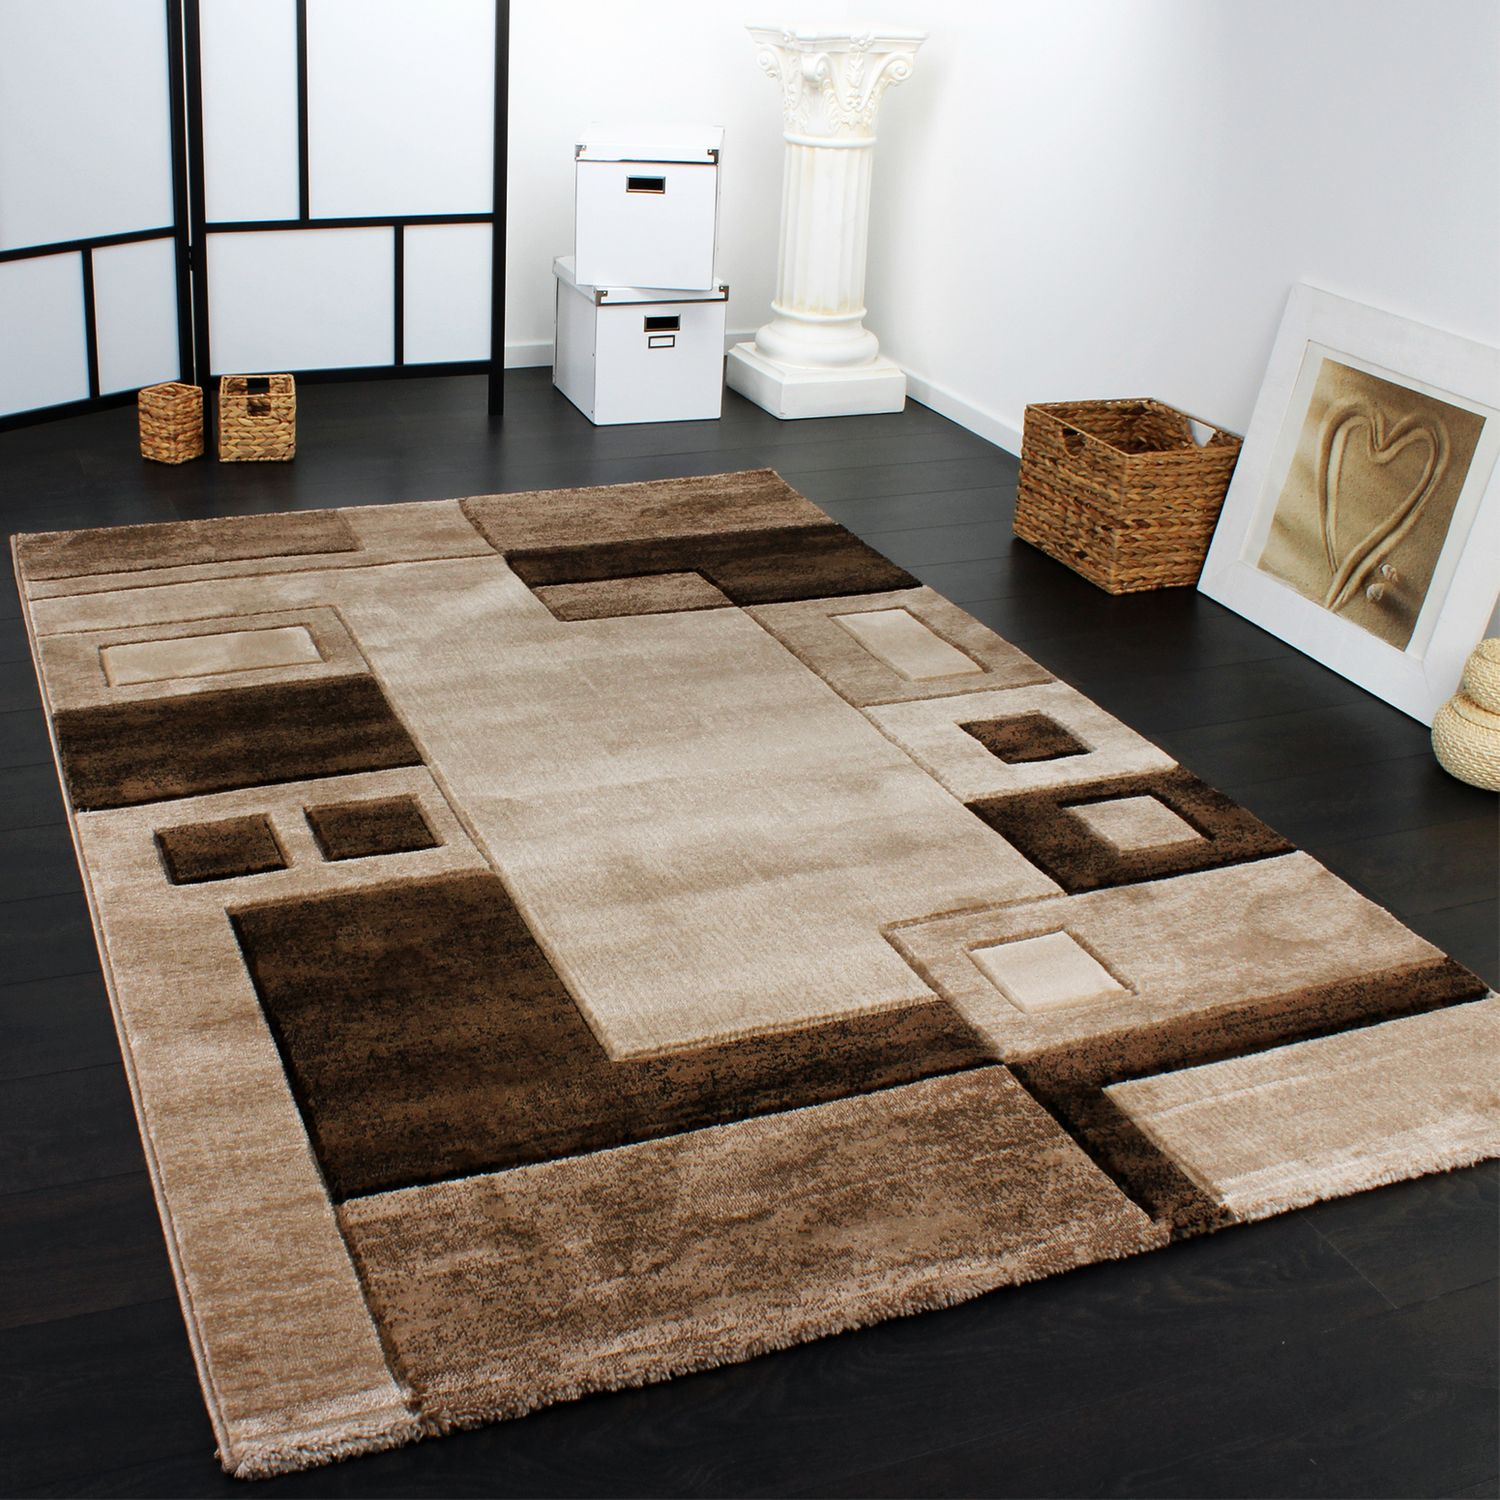 Luxury Designer Rug - Contour Cut - Geometric Checked - Mottled Brown Beige Sale